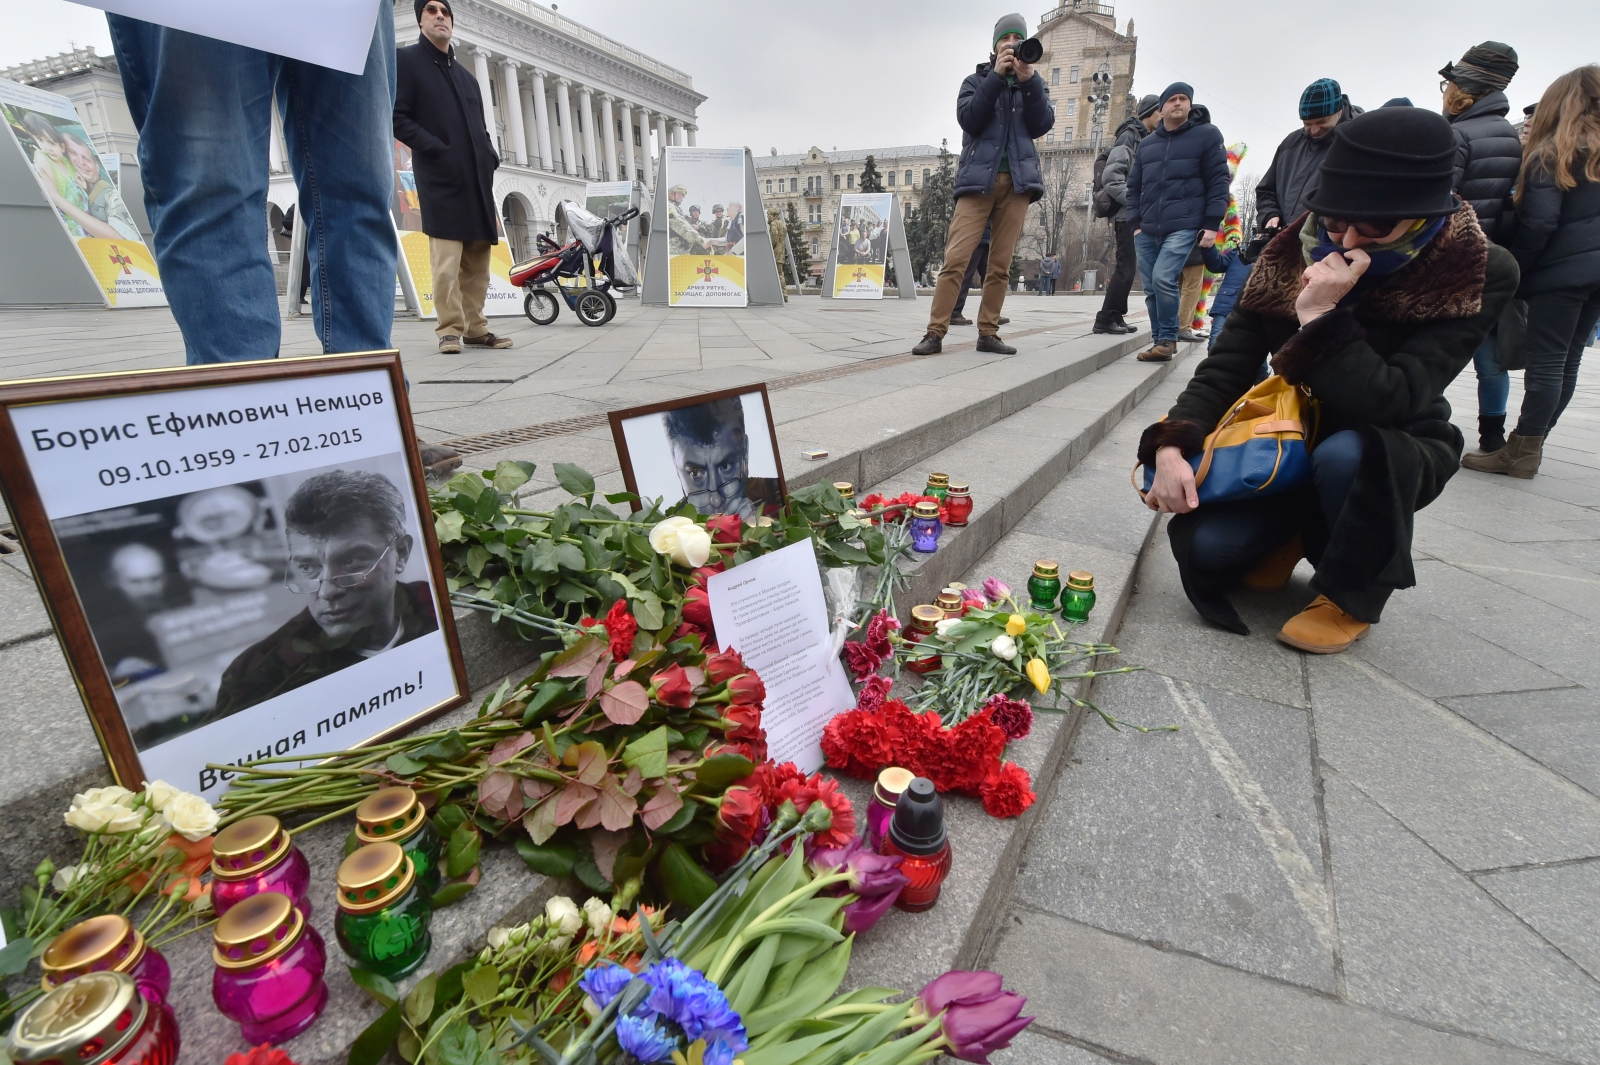 Tributes to Boris Nemtsov in Moscow